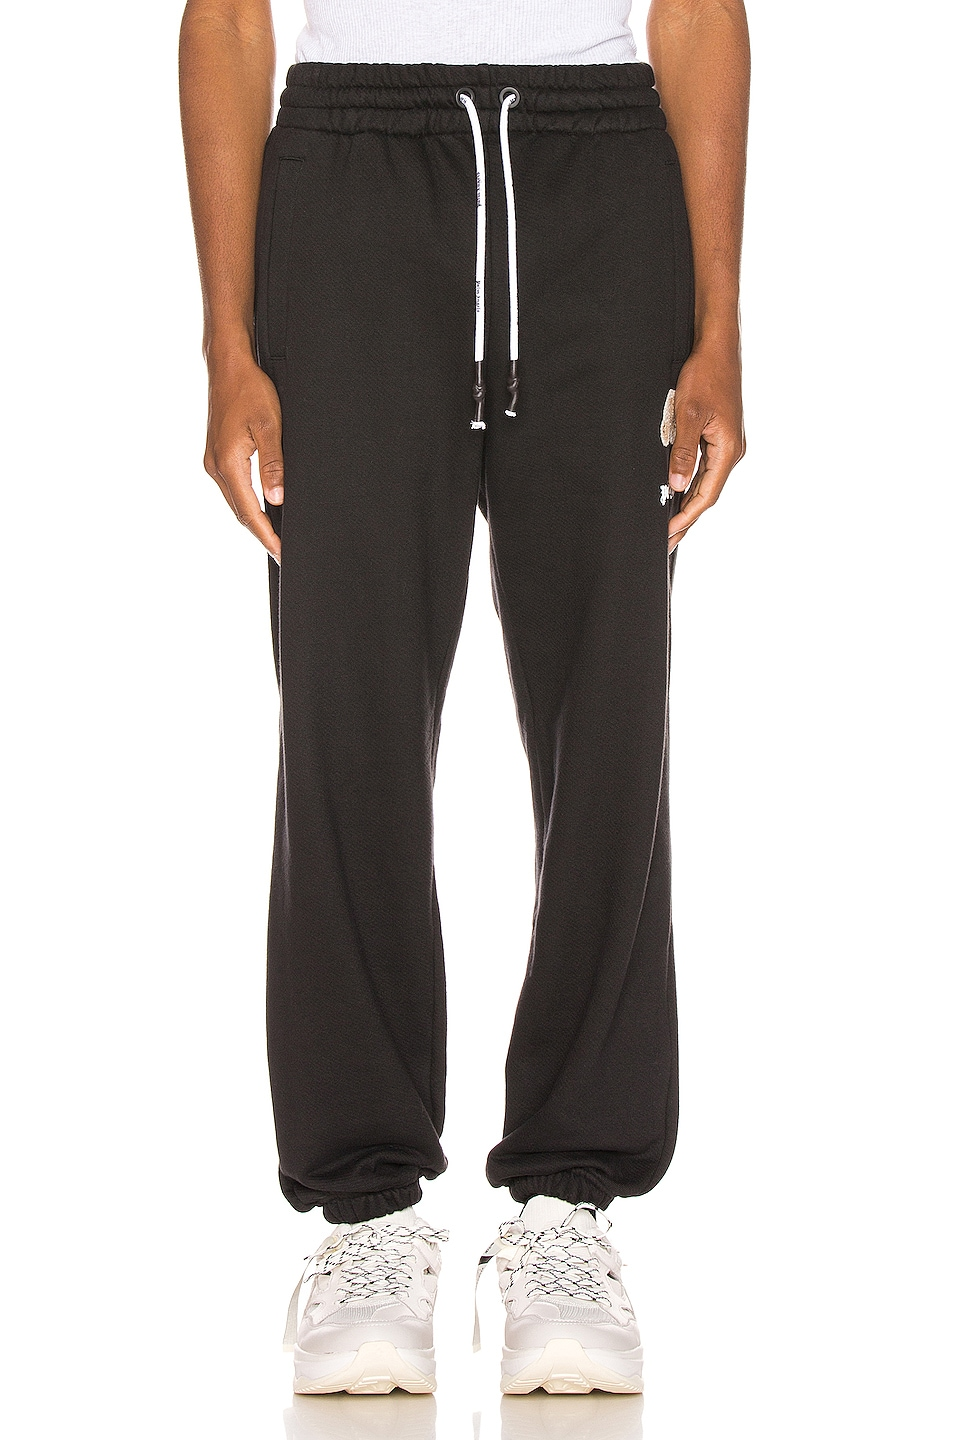 Image 2 of Palm Angels Mini Kill The Bear Sweatpants in Black Brow